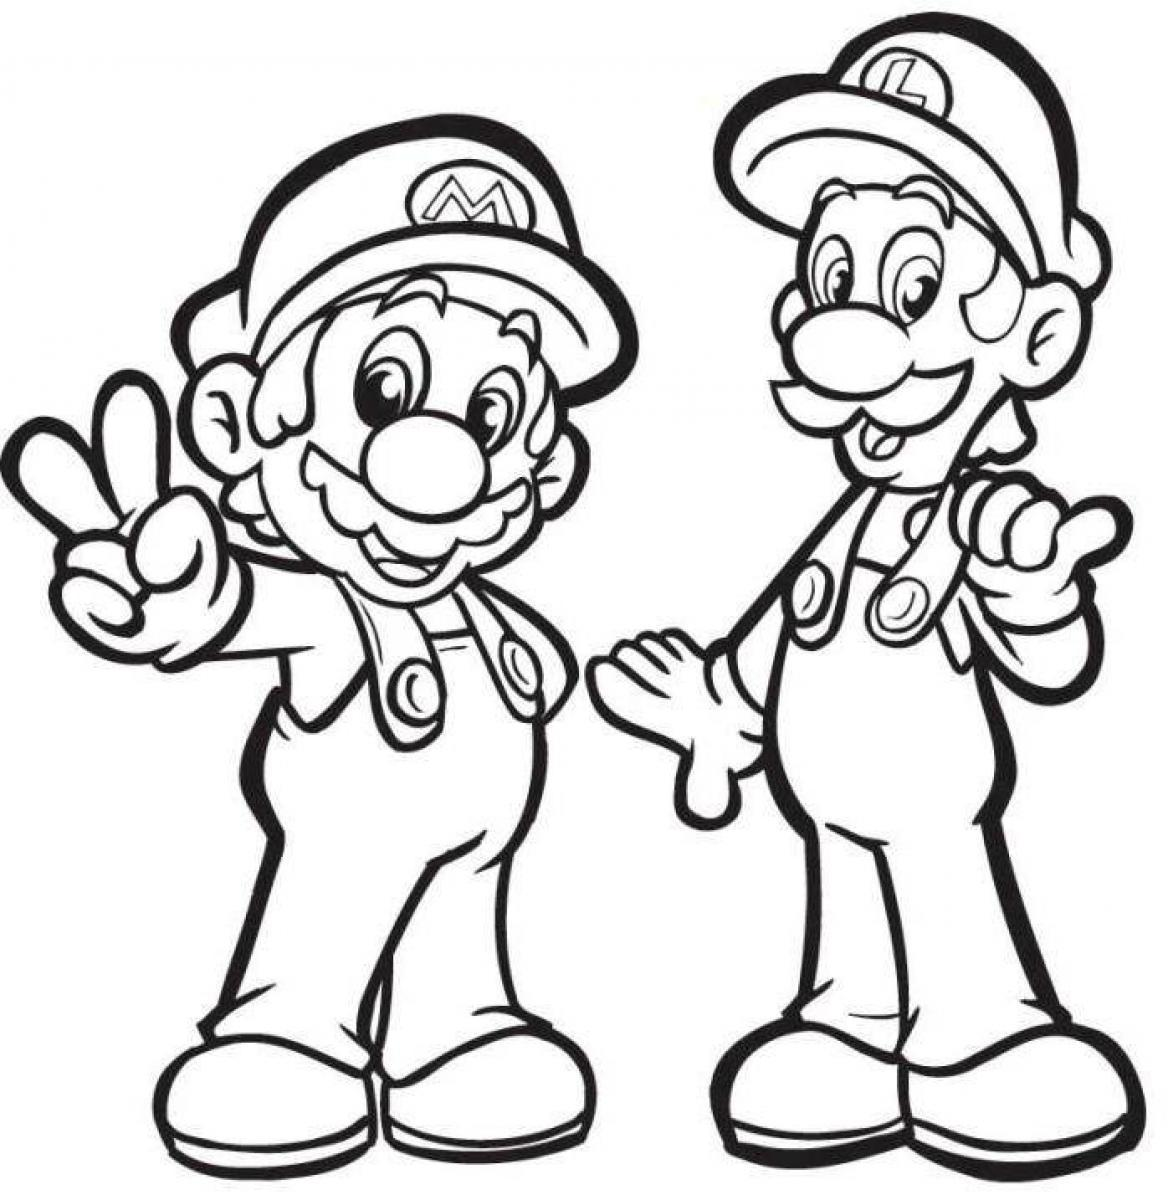 Luigi Coloring Pages Only Coloring Pages Luigi Coloring Page